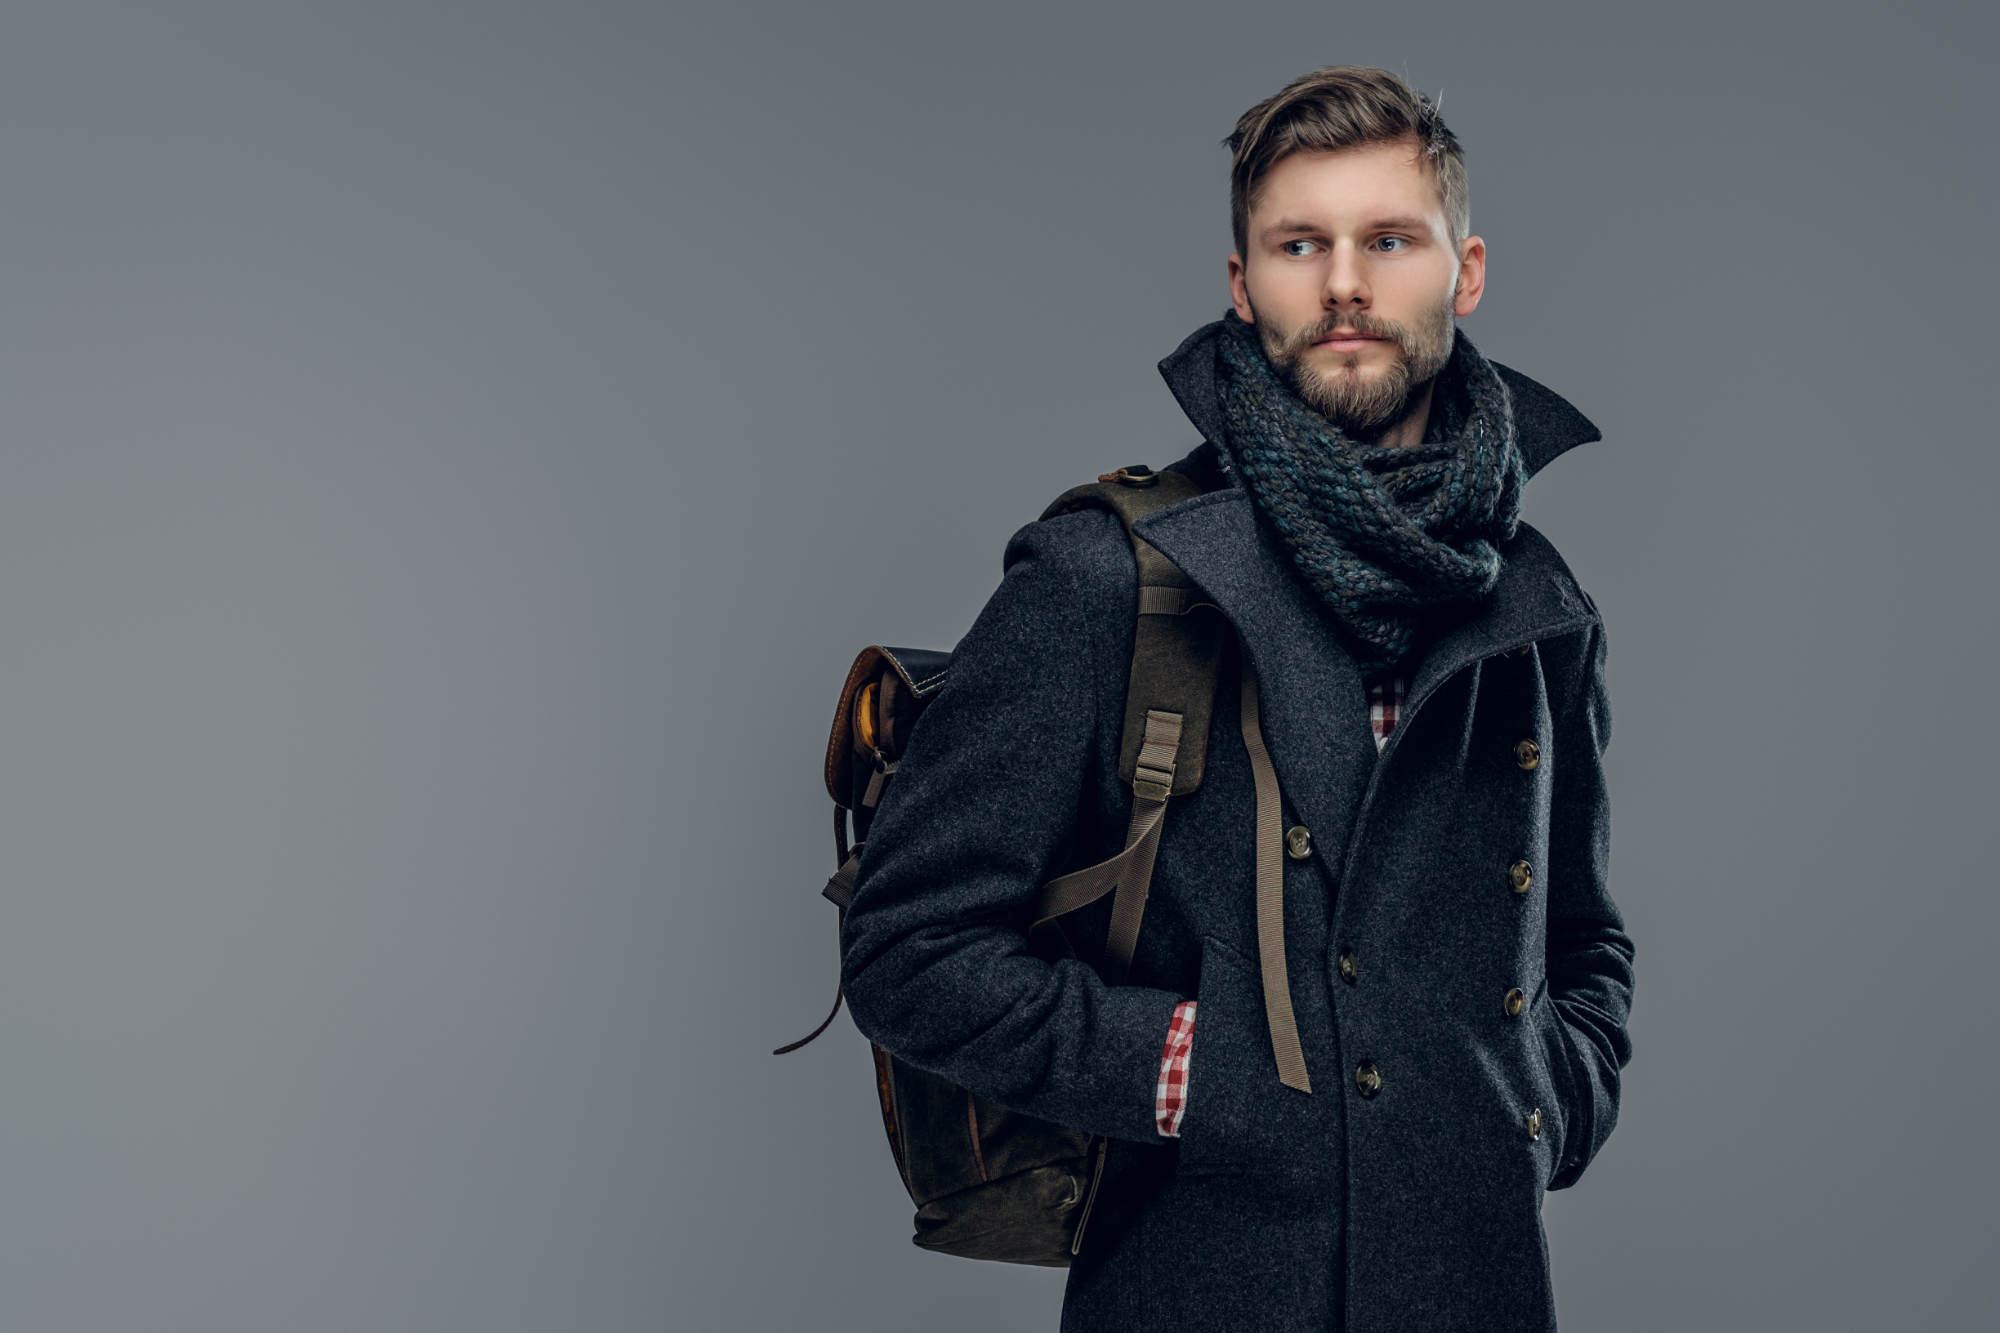 Portrait of bearded male dressed in a warm jacket and a scarf  hold a backpack isolated on grey background.